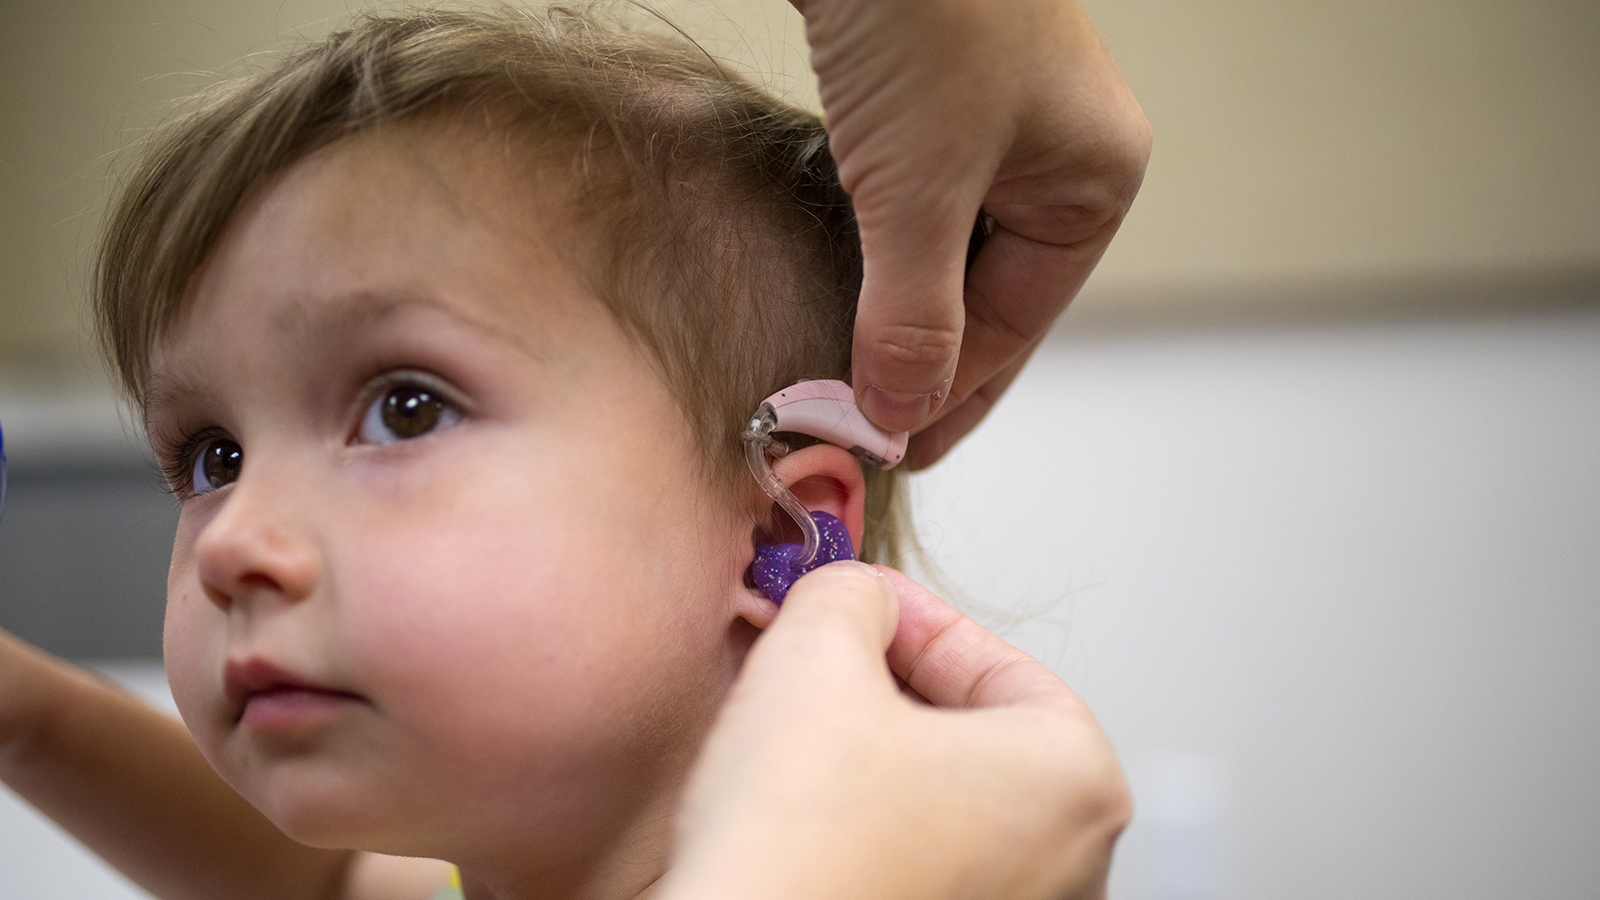 Evie Rausch is one of the children who has received hearing aids through HearU Nebraska.